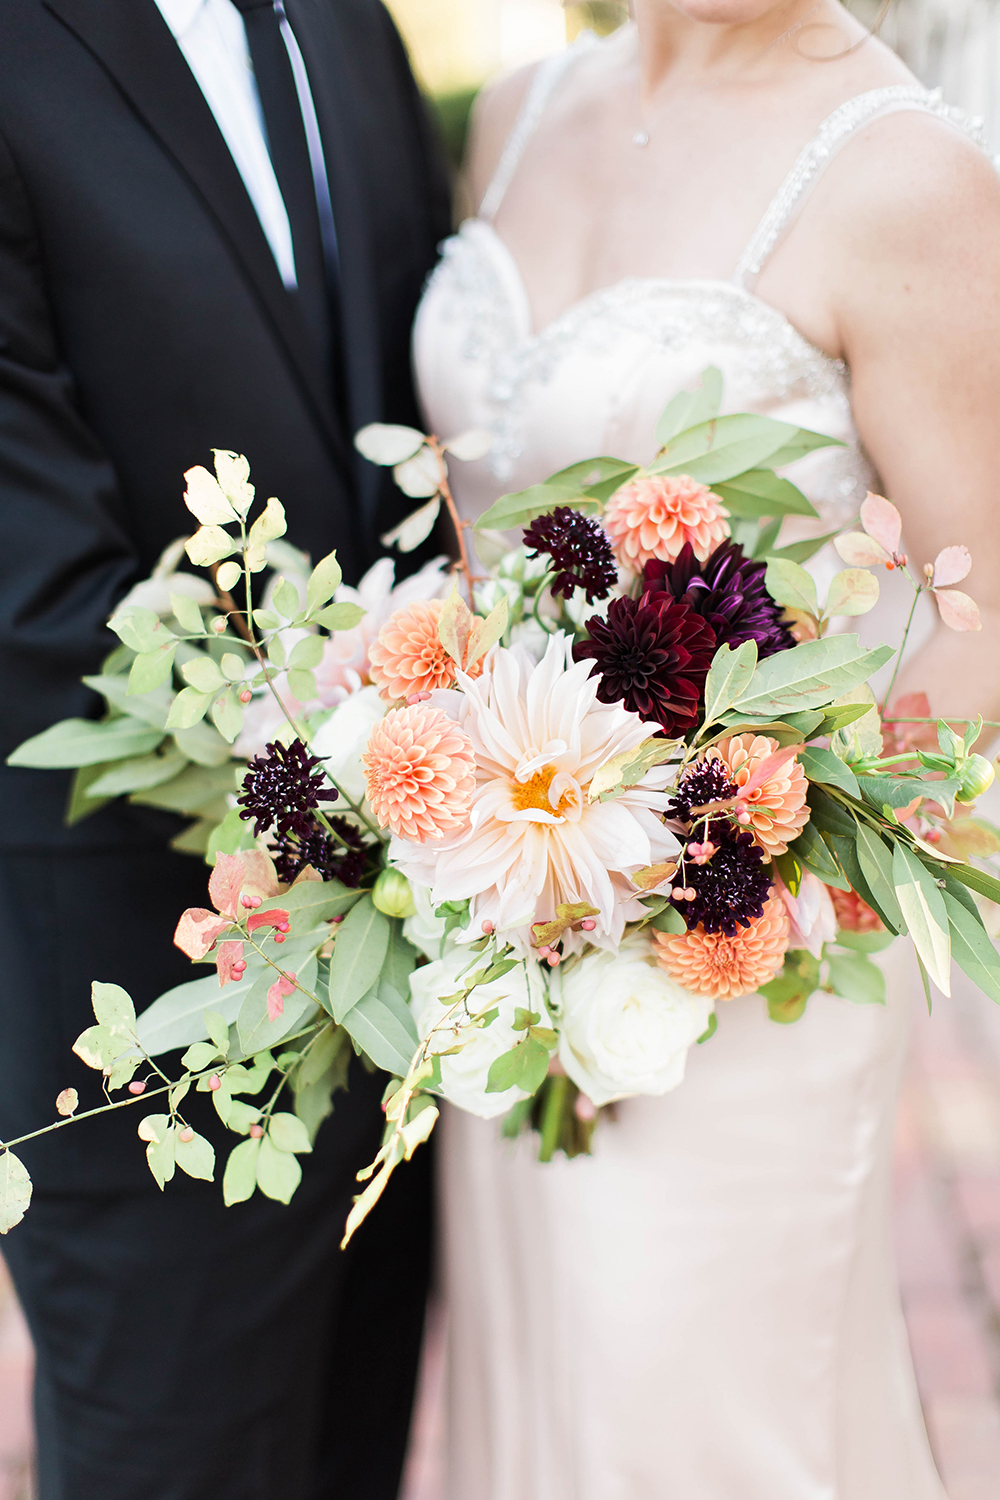 peach and burgundy bouquet - photo by Candice Adelle Photography http://ruffledblog.com/historic-garden-wedding-inspiration